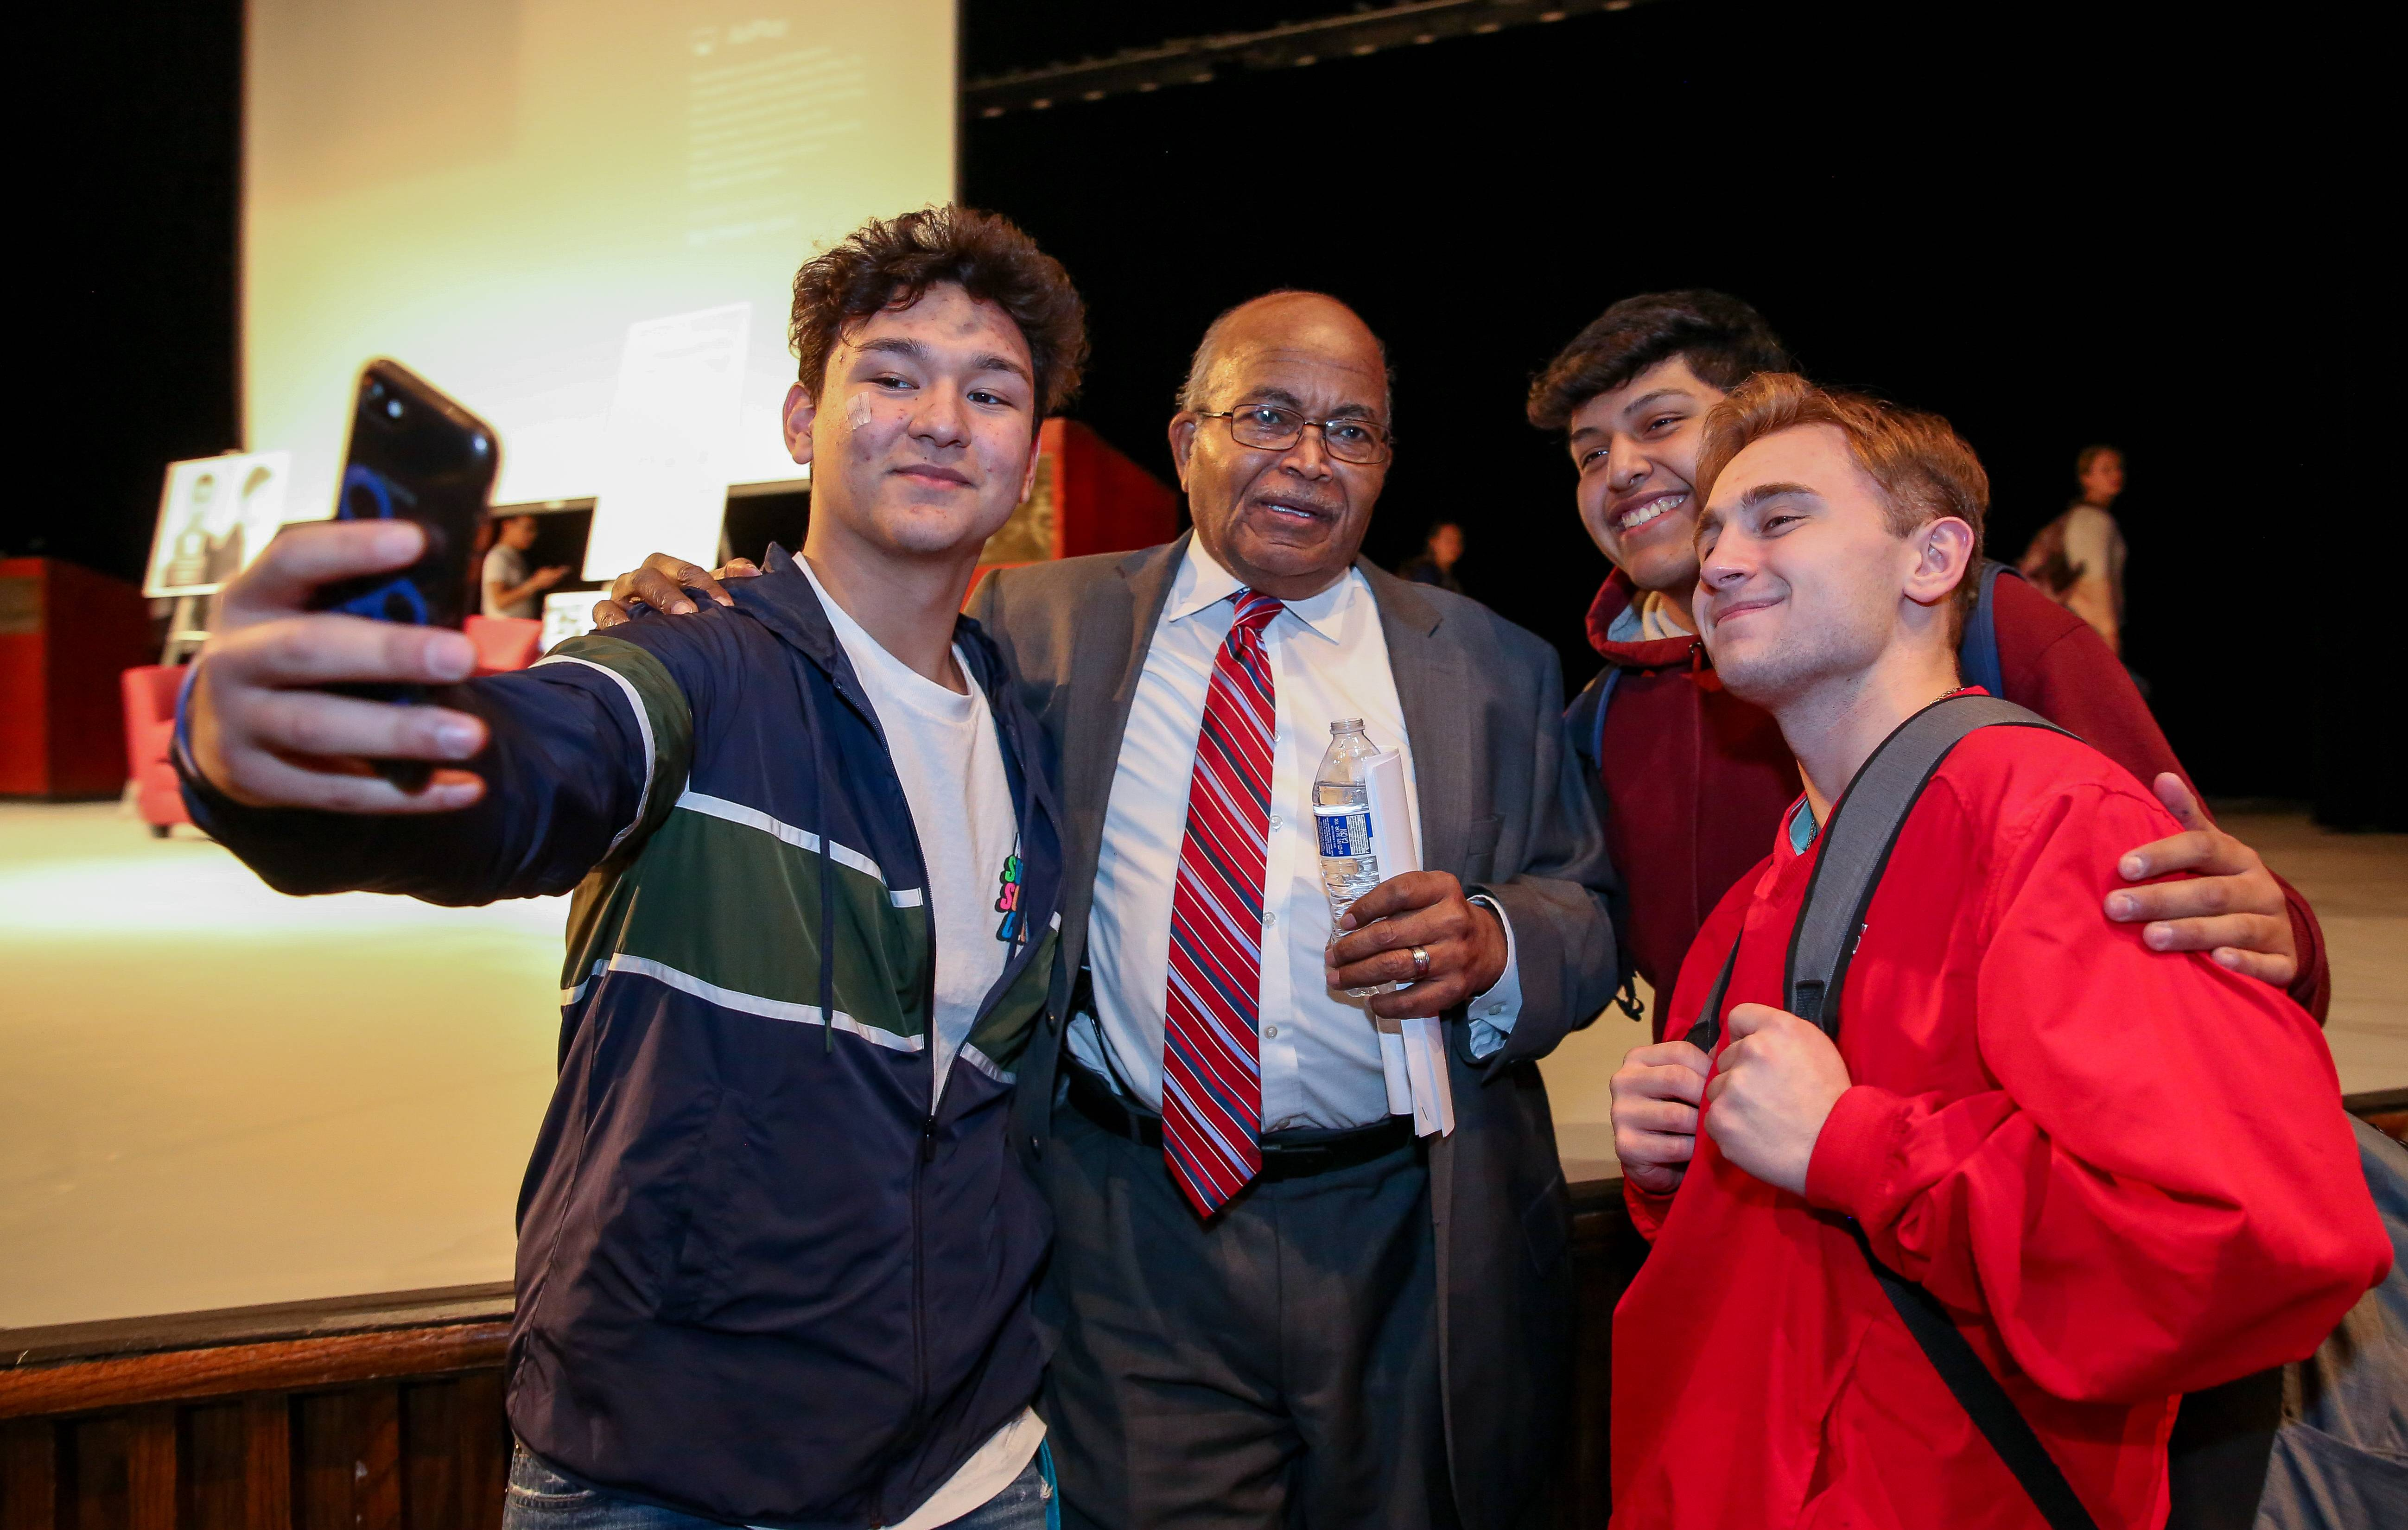 Thomas Armstrong of Naperville poses with, from left, Buffalo Grove High School juniors Giovanni Alegria, Juan Simon and Dylan Konefes after speaking at the school Wednesday about his role in the civil rights movement as a Freedom Rider.